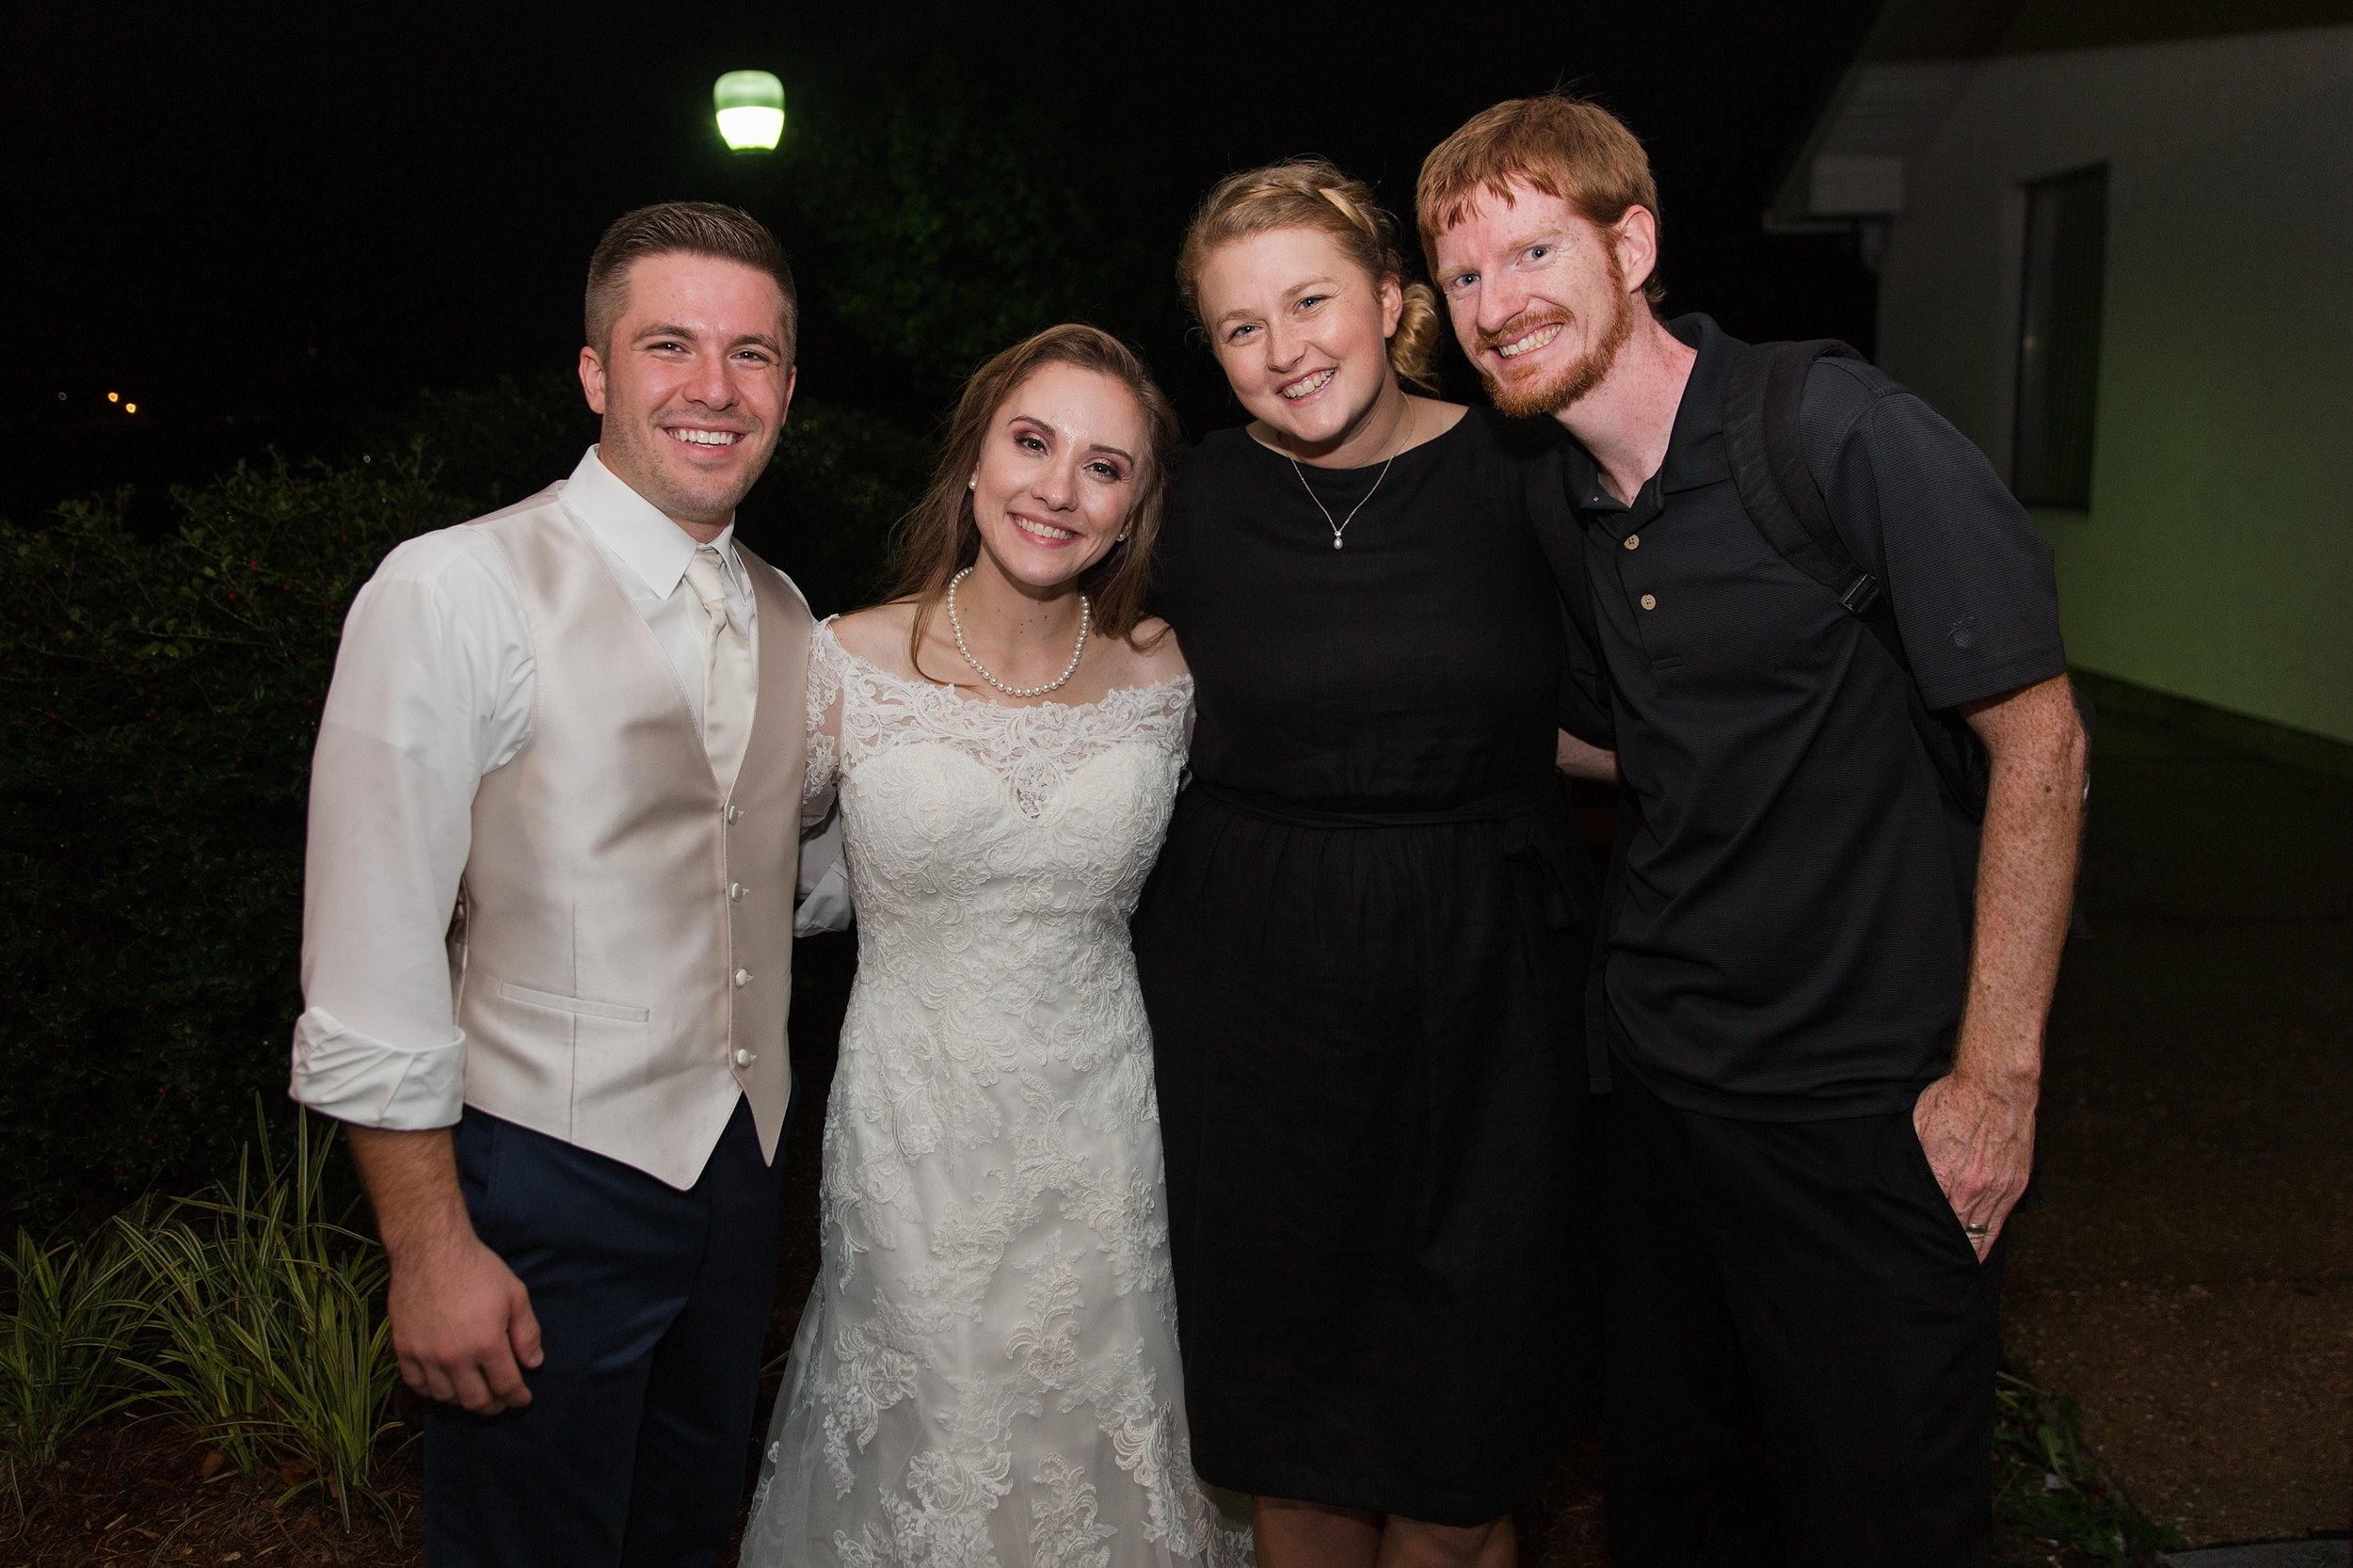 A photo with the photographers. Congratulations Megan + Caleb!!! xoxo-Jessica + William McBroom